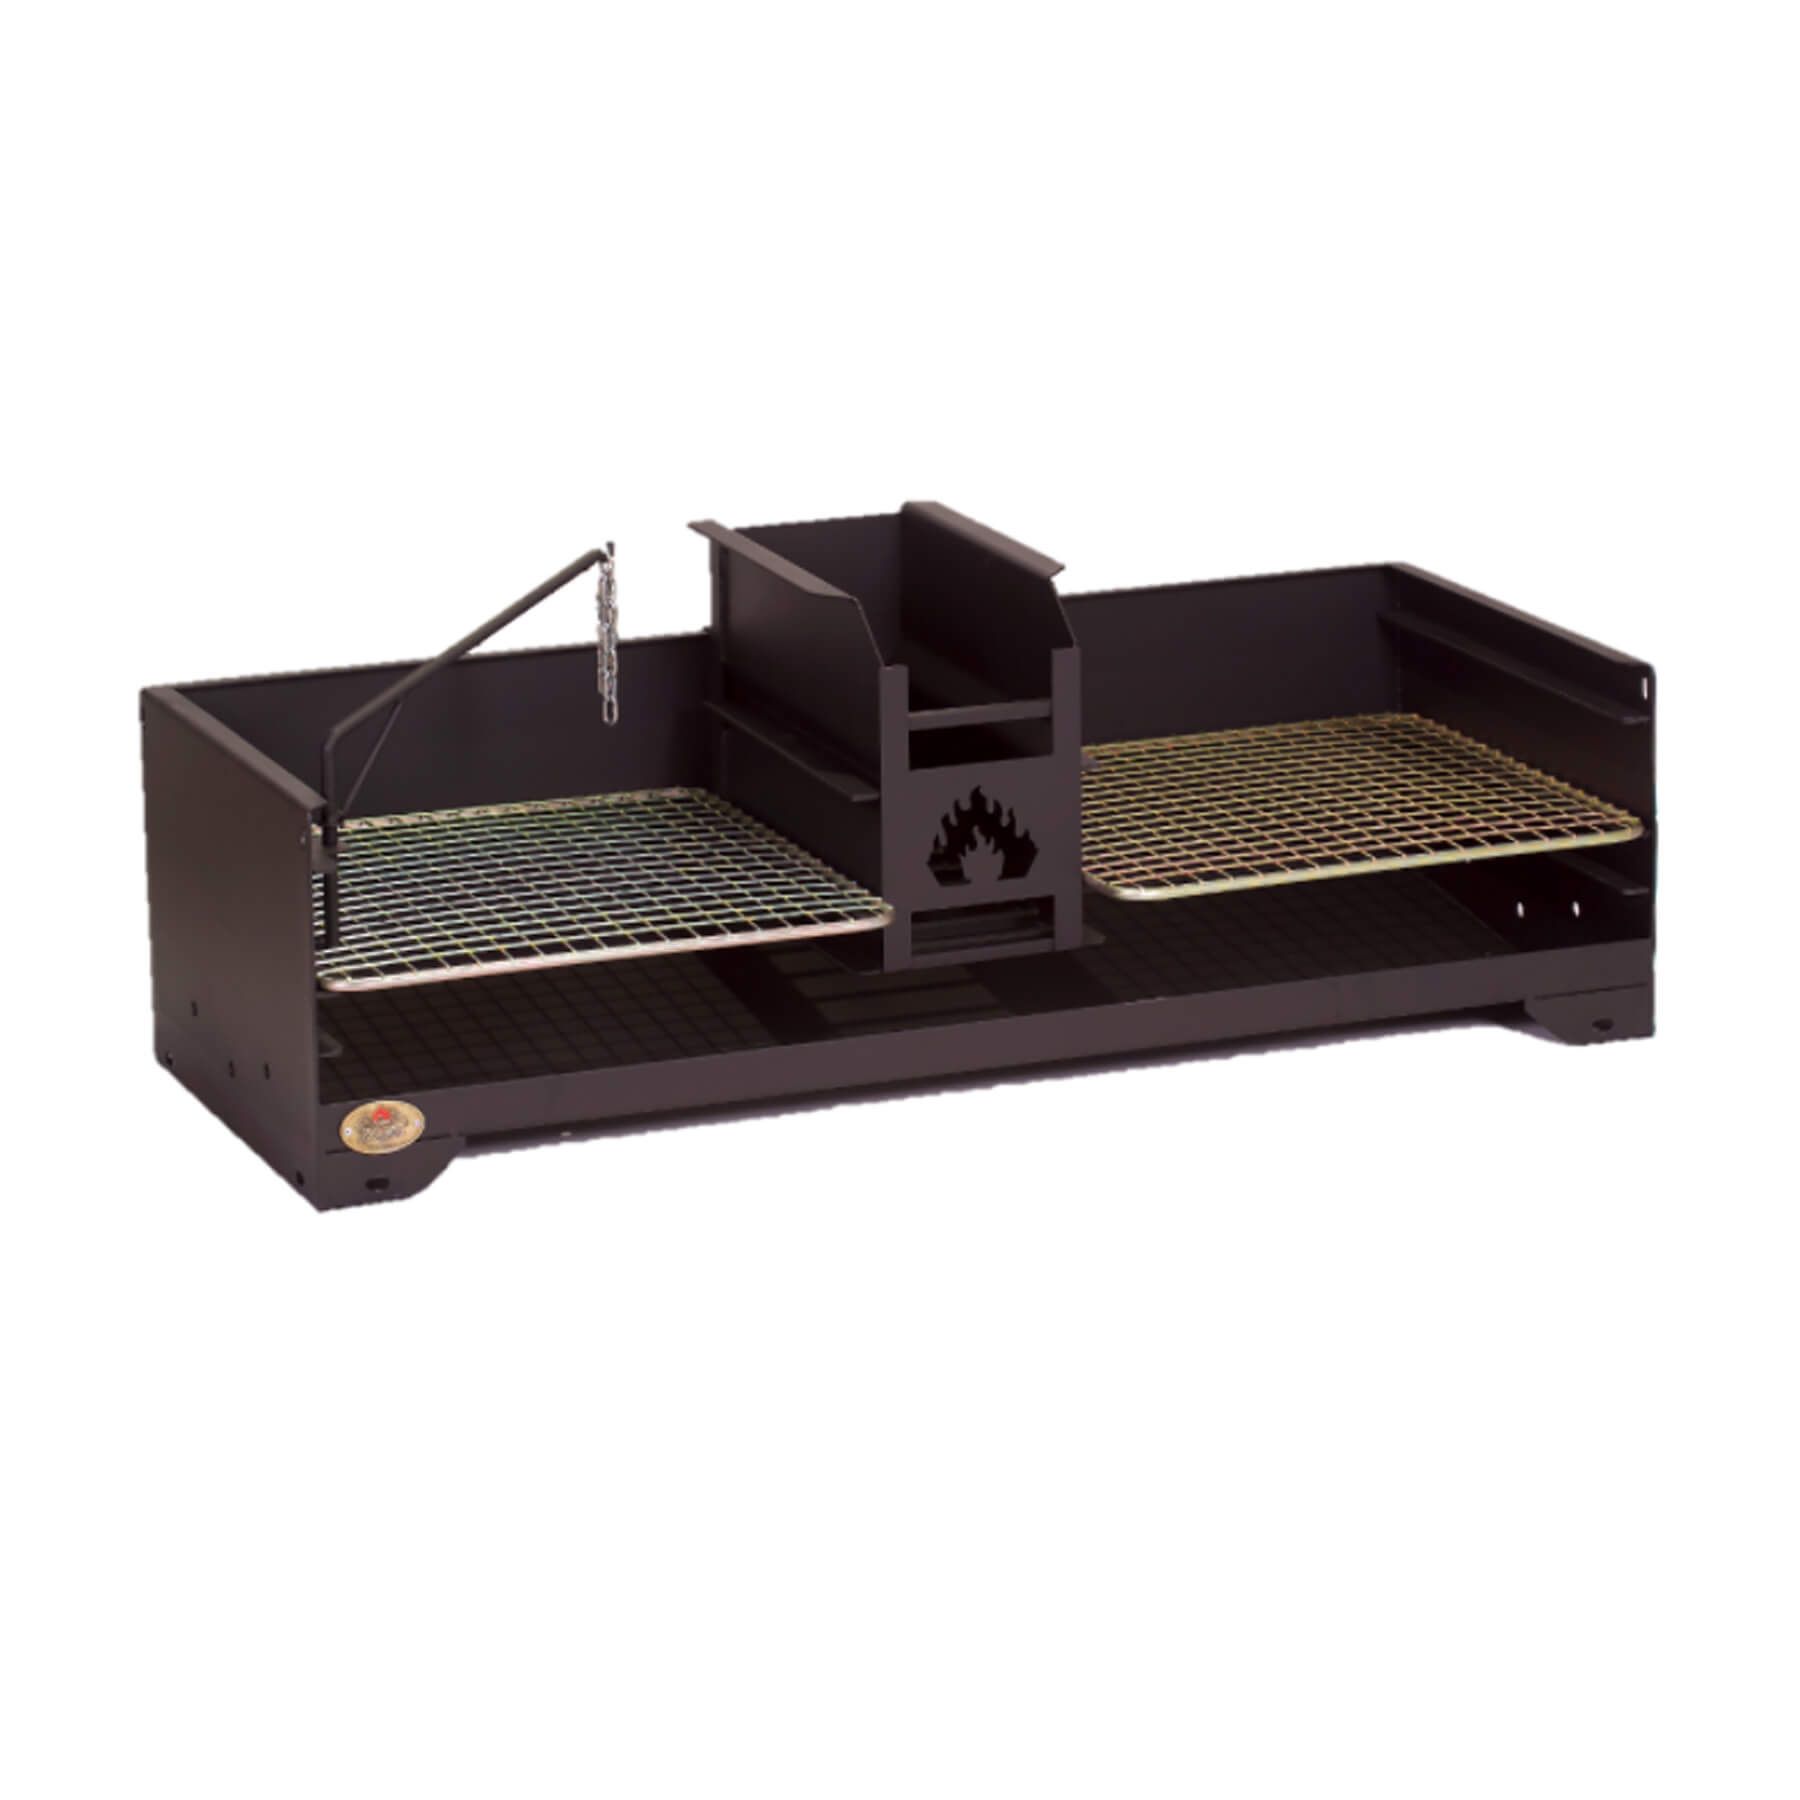 Braais-Freestanding-1200-Table-Wood-Home-Fires